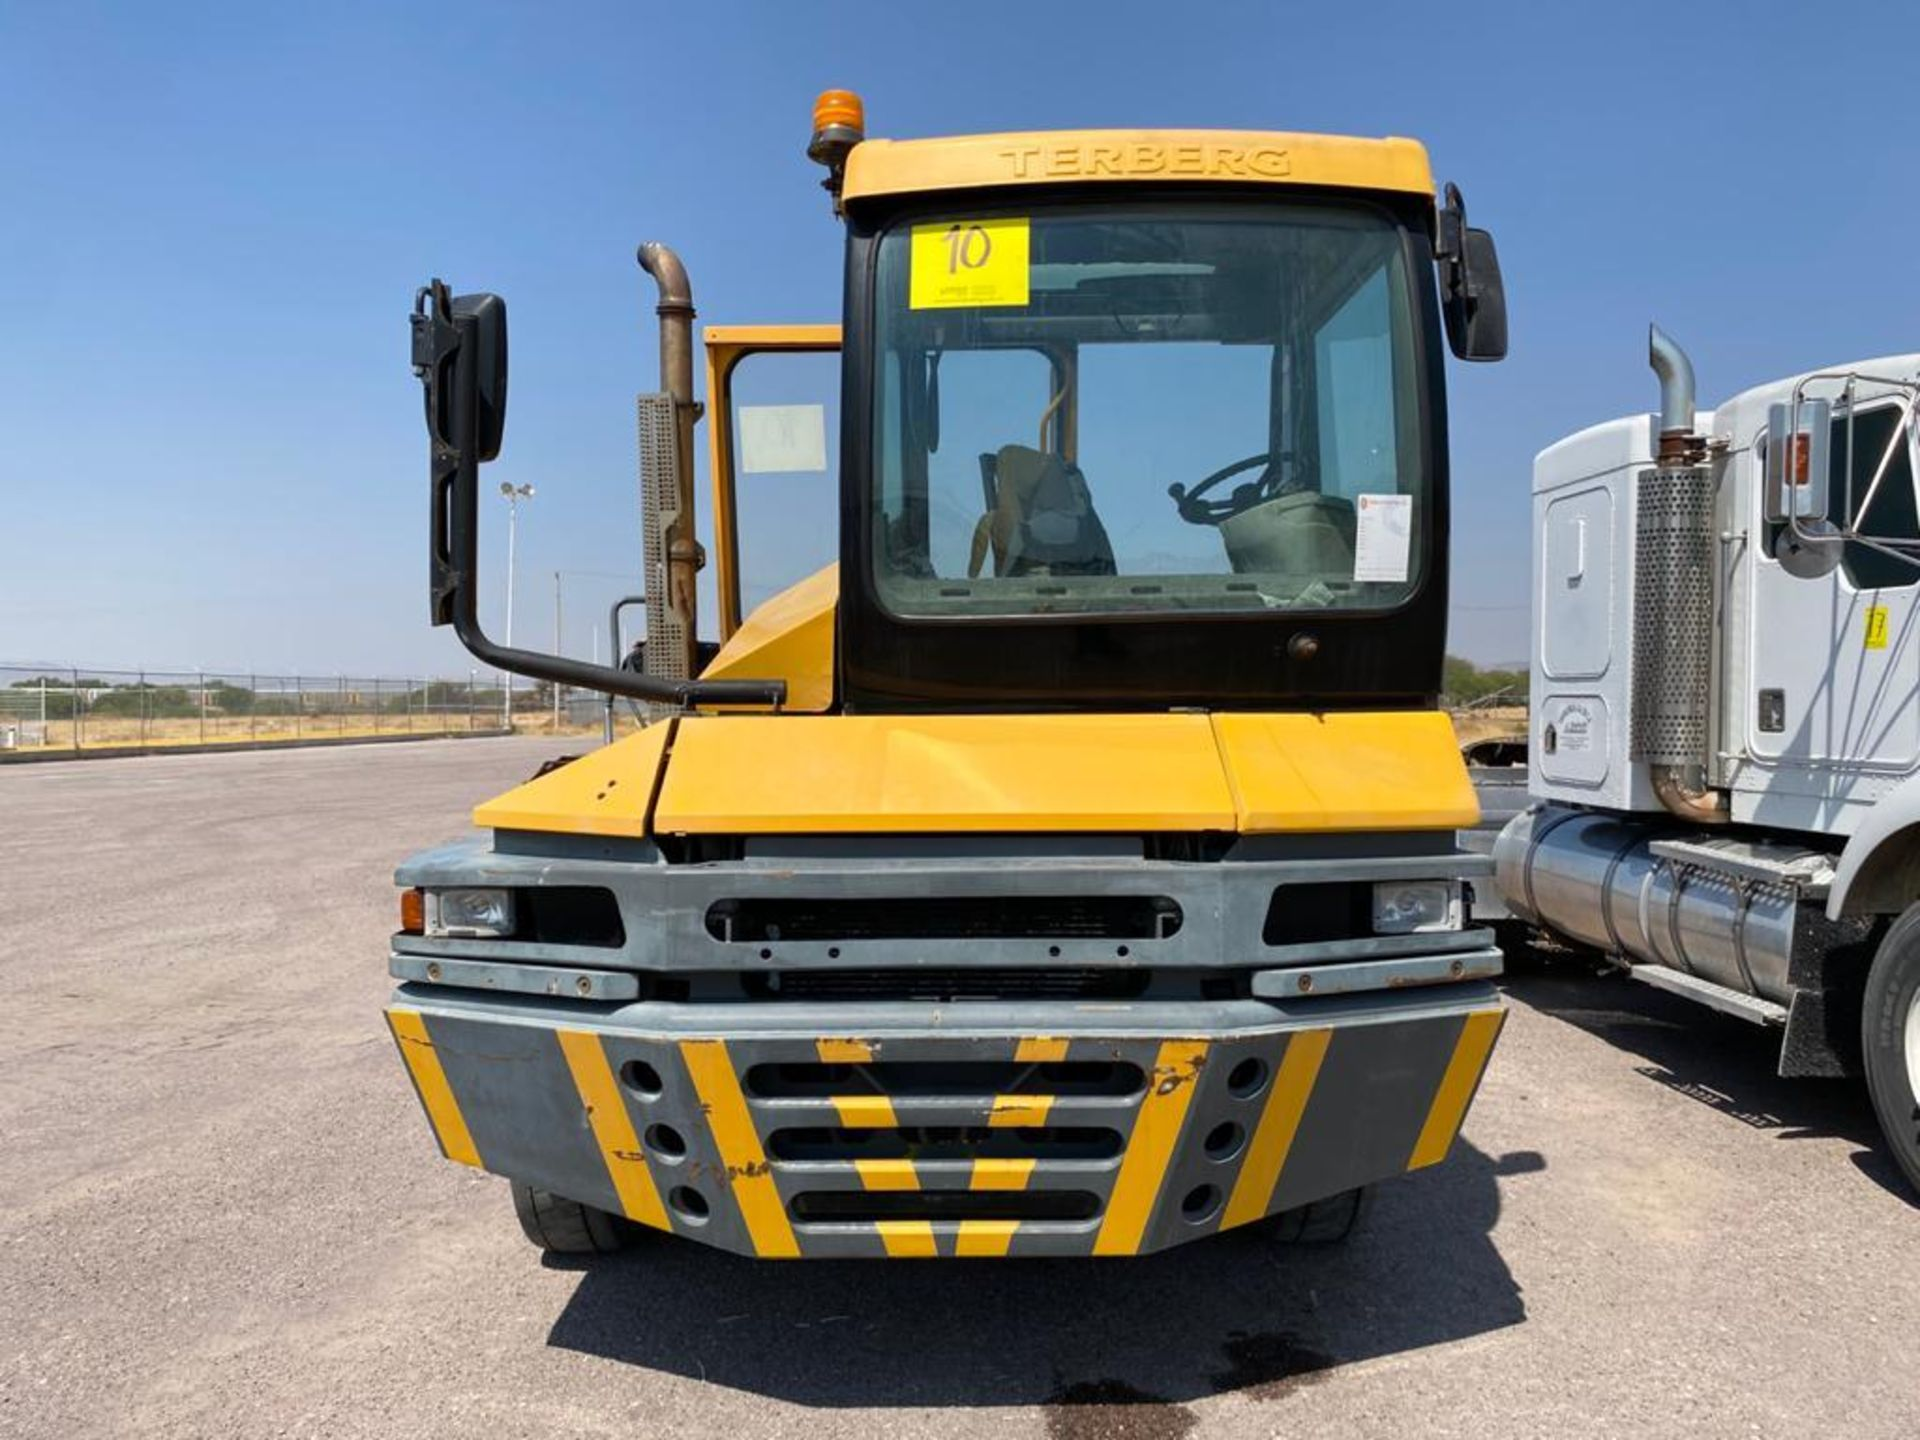 Terberg Capacity 2002 Terminal Tractor, automatic transmission, with Volvo motor - Image 7 of 28